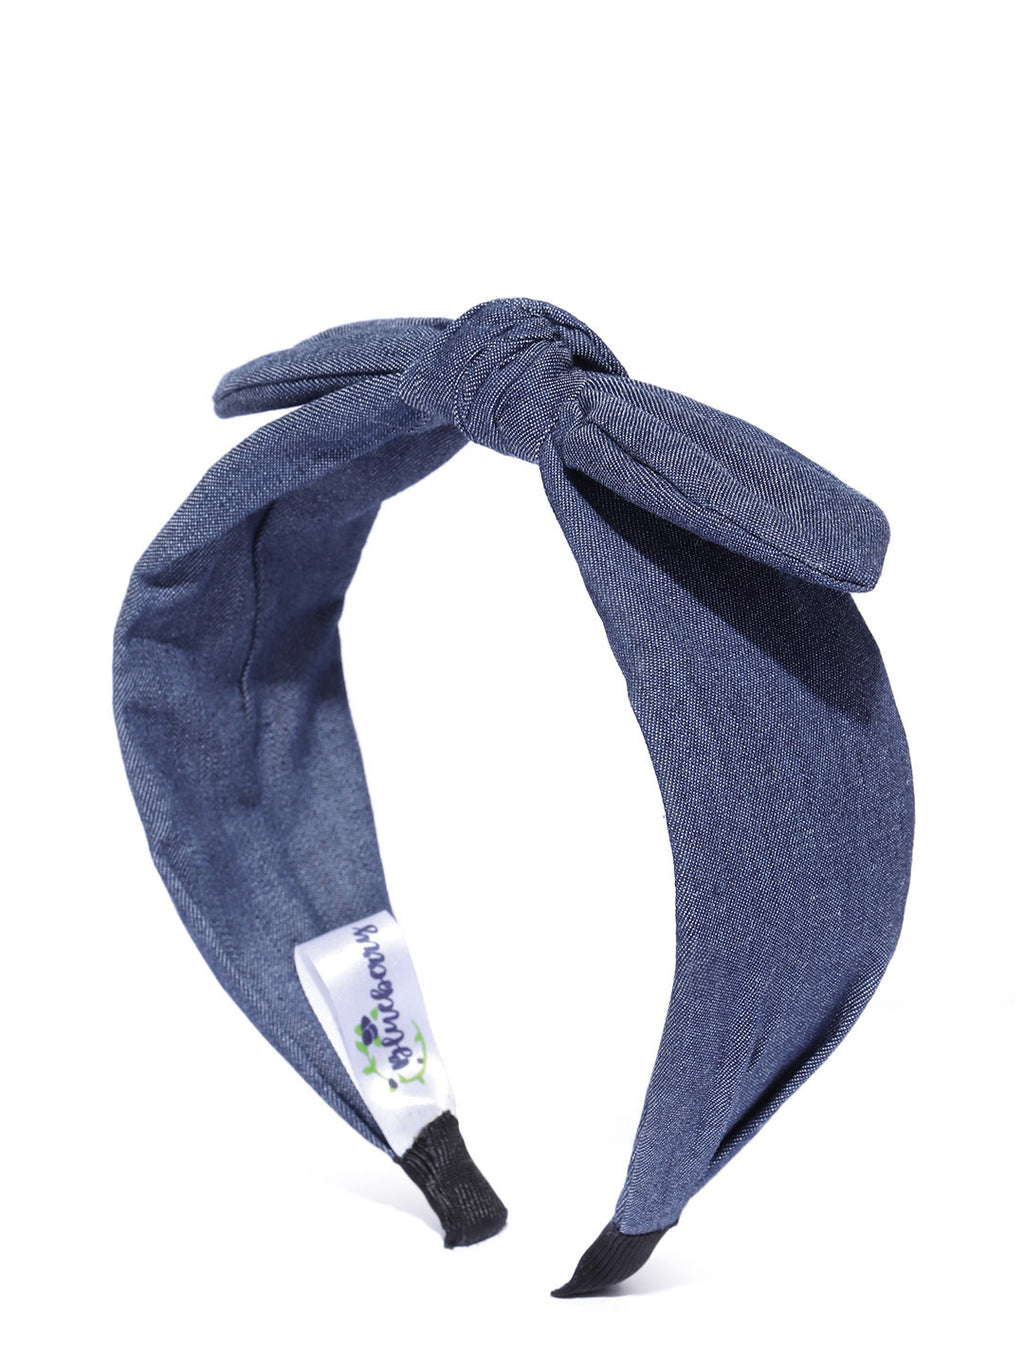 Blueberry Navy blue denim bunny knot hair band